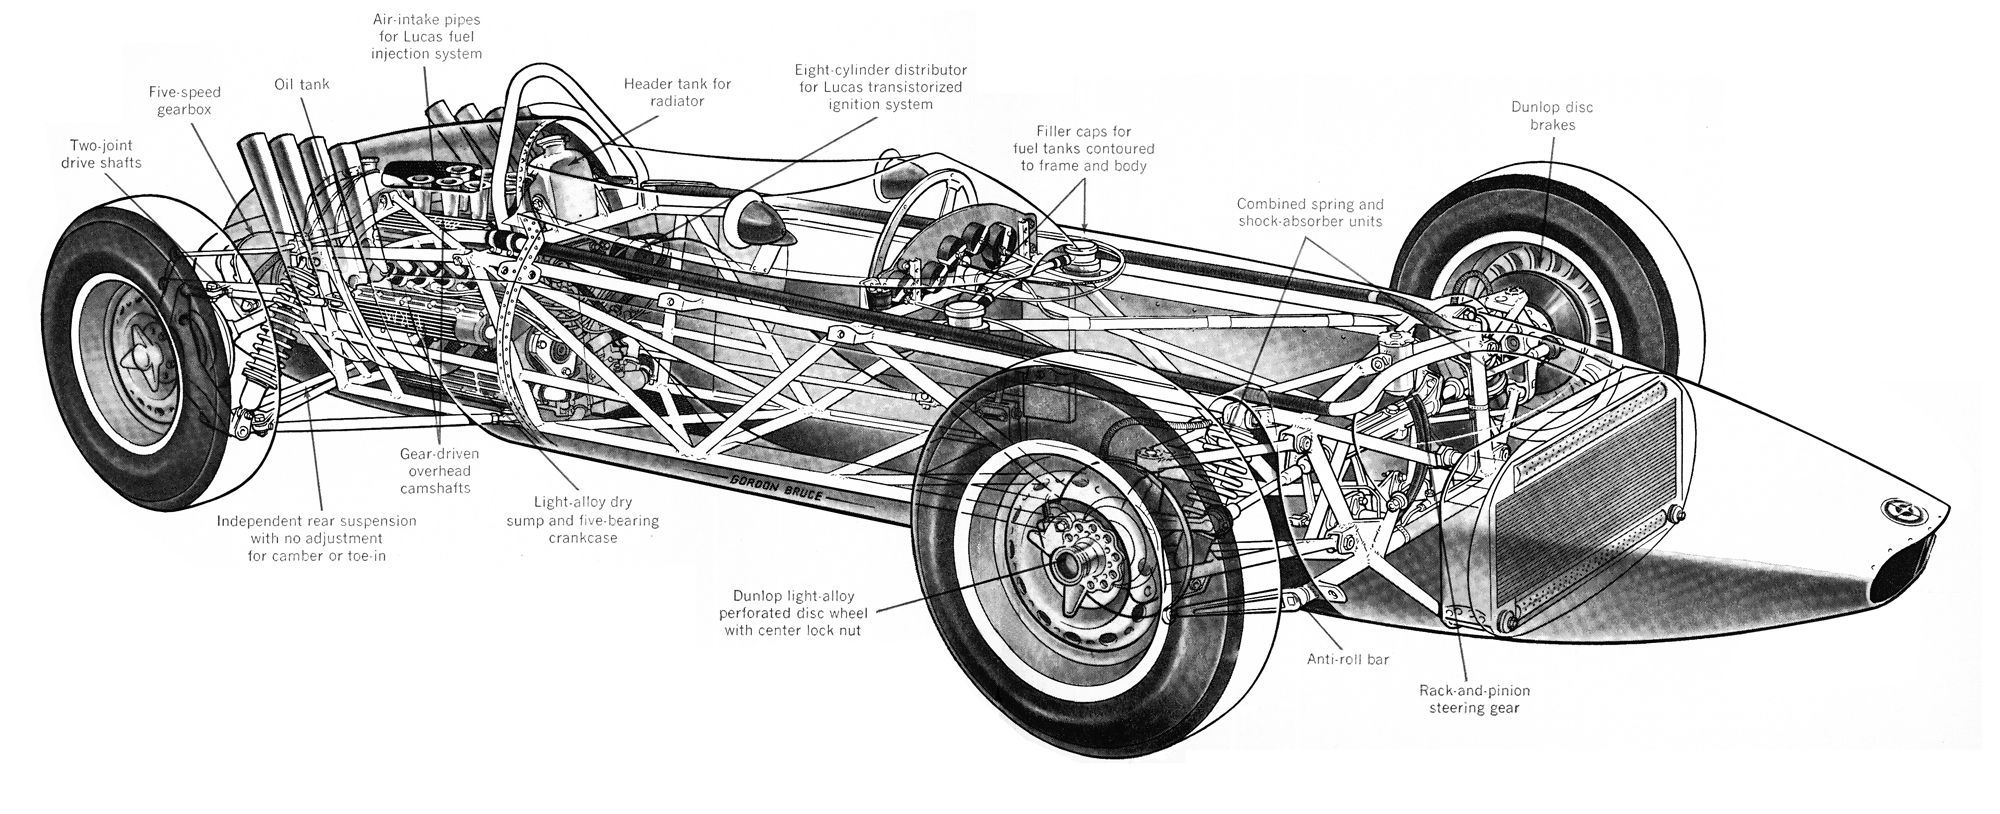 Another Car & Driver centerspread illustration from Gordon Bruce ...